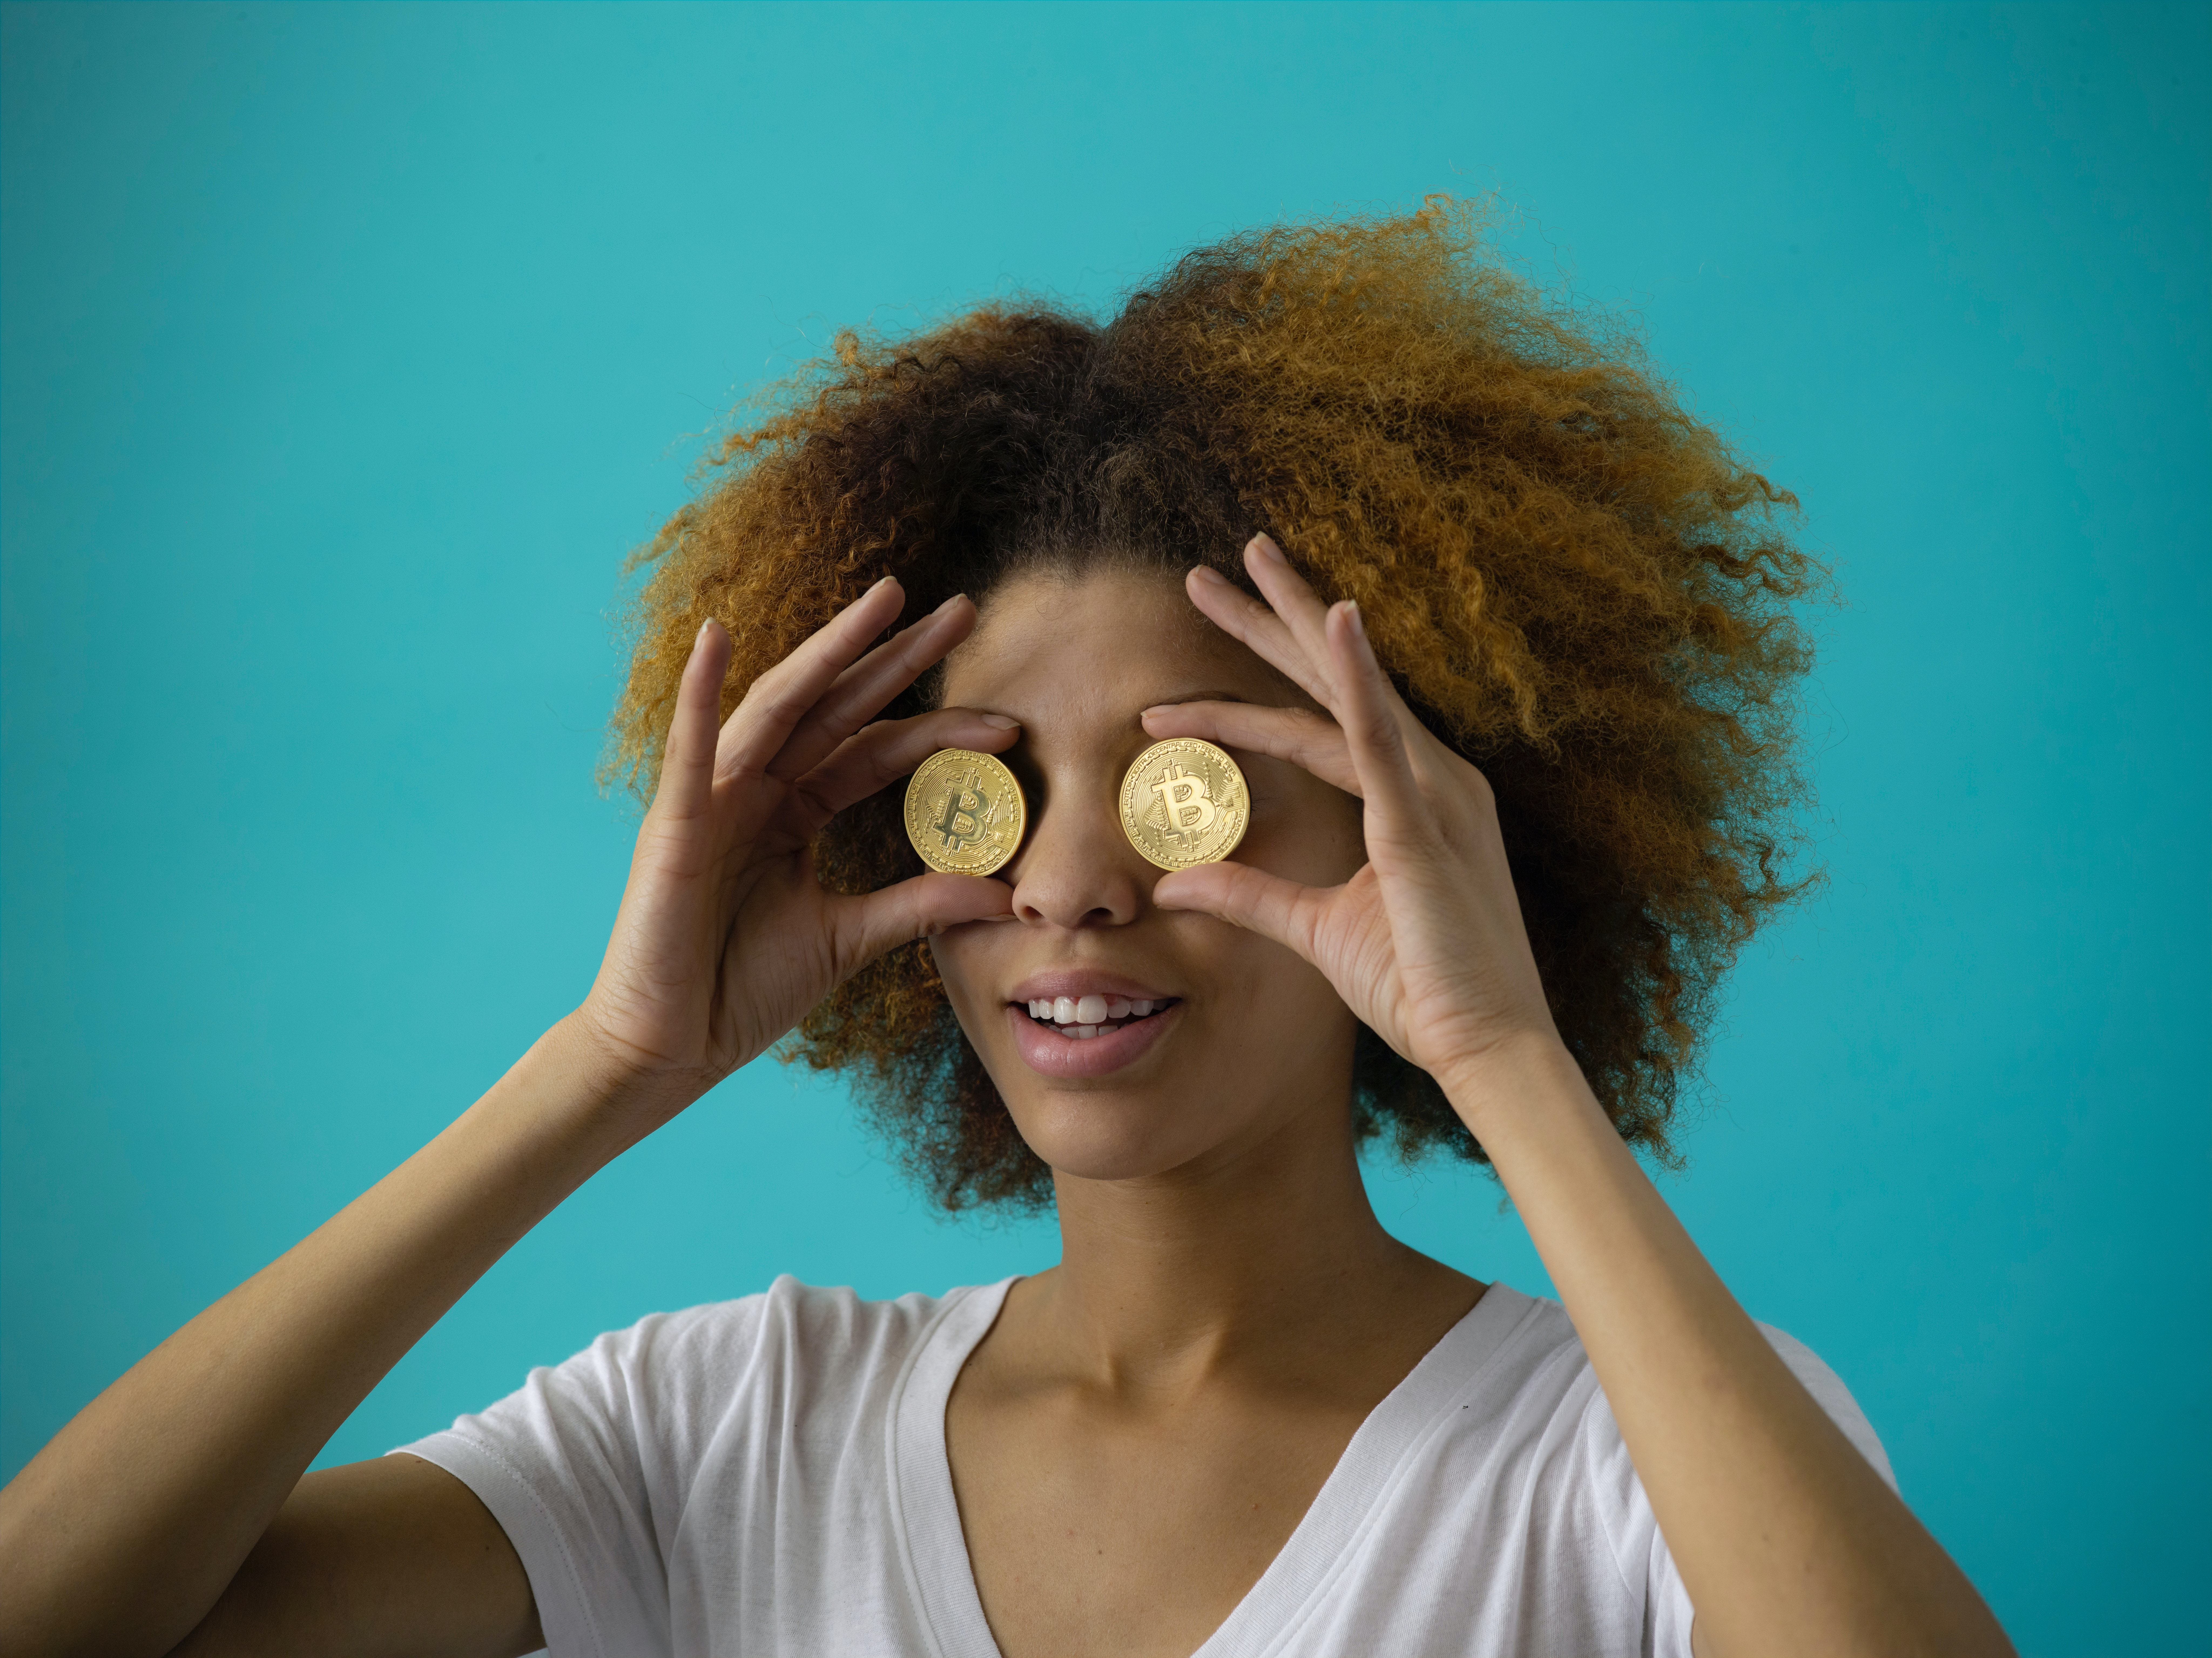 Investing in cryptocurrency. has a strong return. So does Investing in United Way.